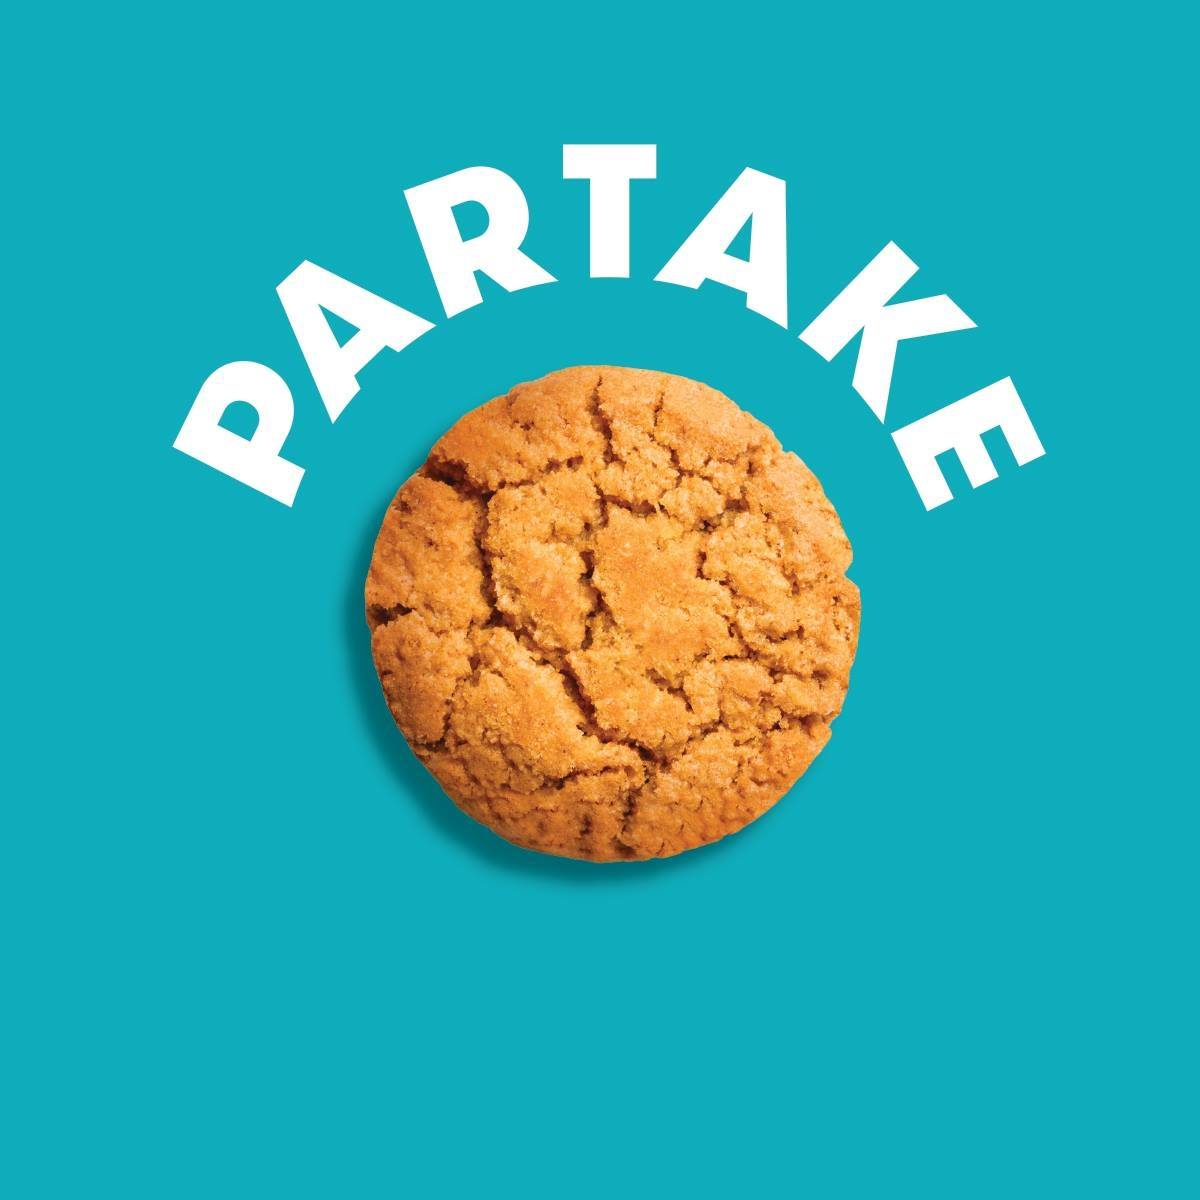 Partake Foods to Release Limited Edition Pumpkin Spice Cookies